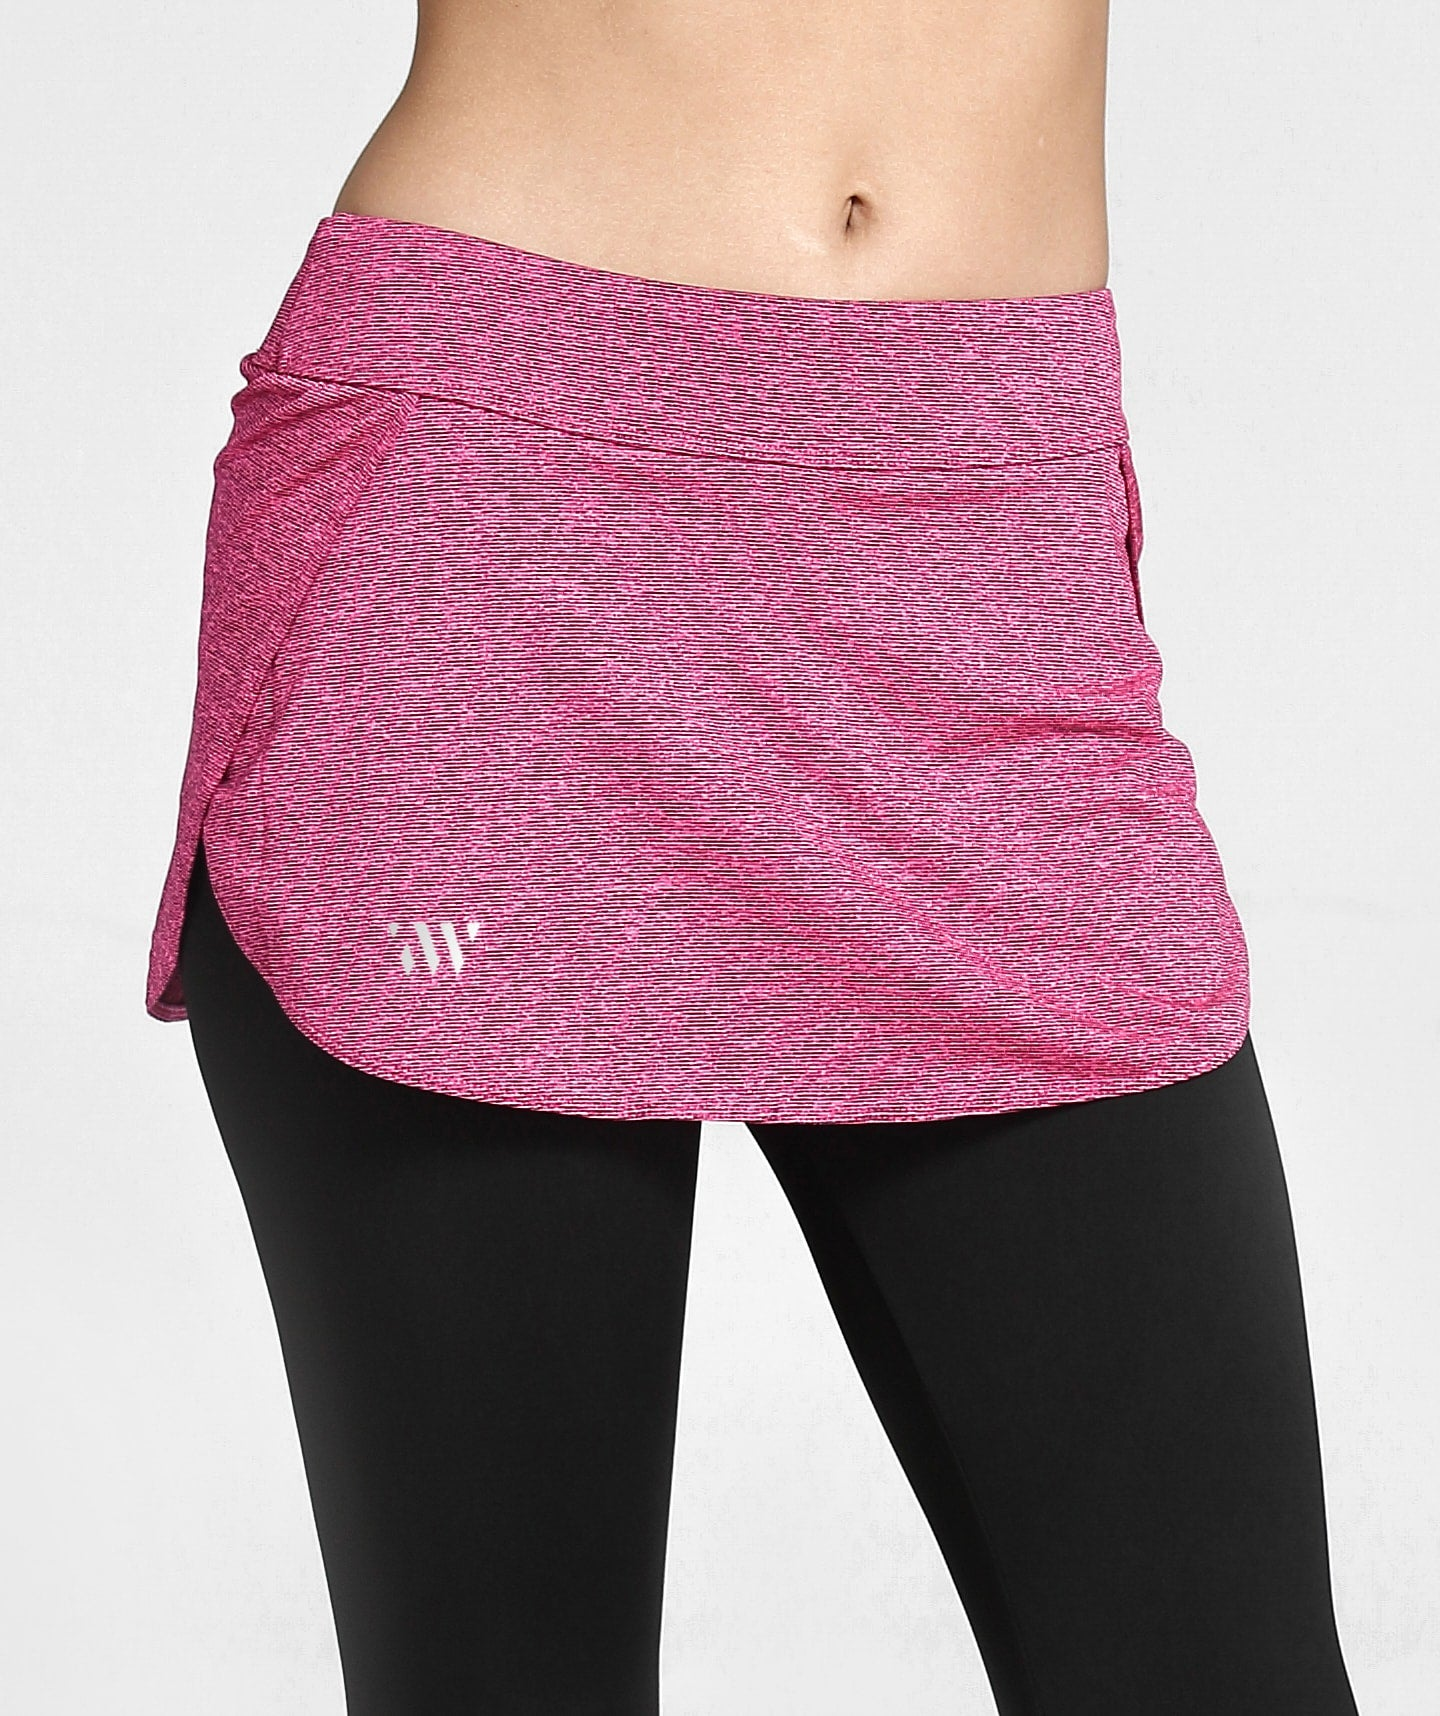 Inside Glamour Skirted Sports Leggings - Rose Red